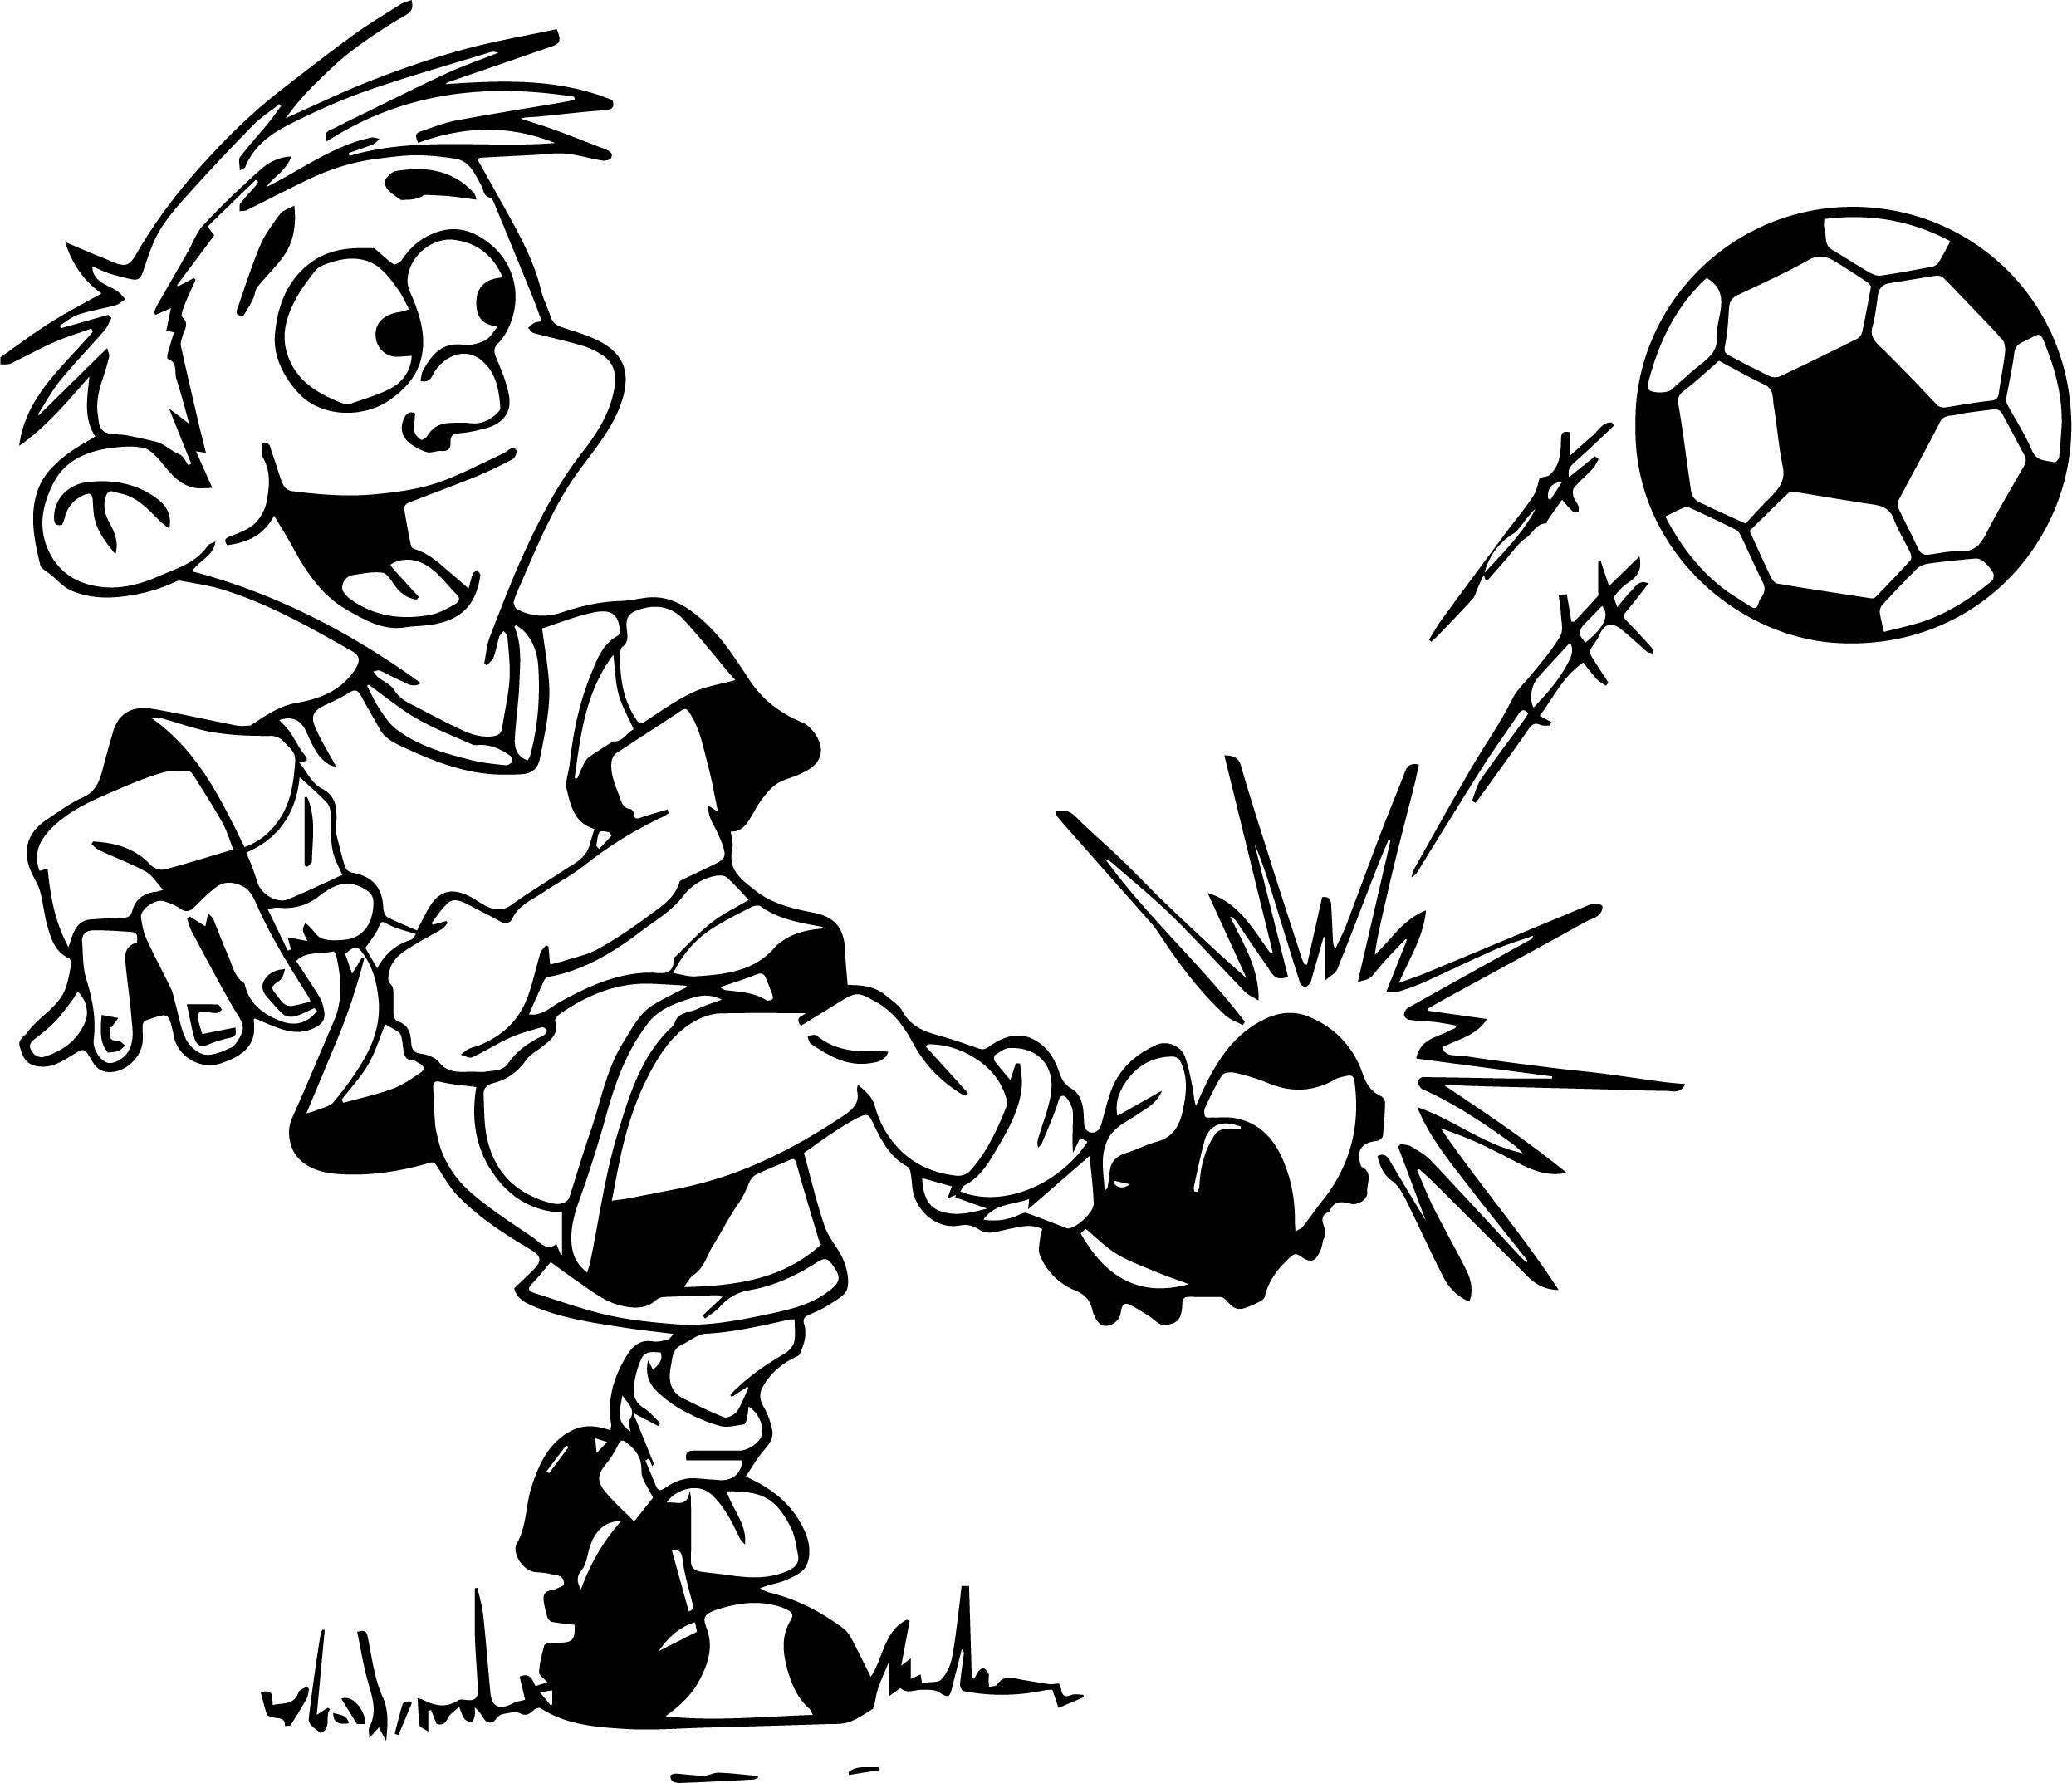 2495x2147 Coloring Pages Football Printable Page For Line Drawings Picture